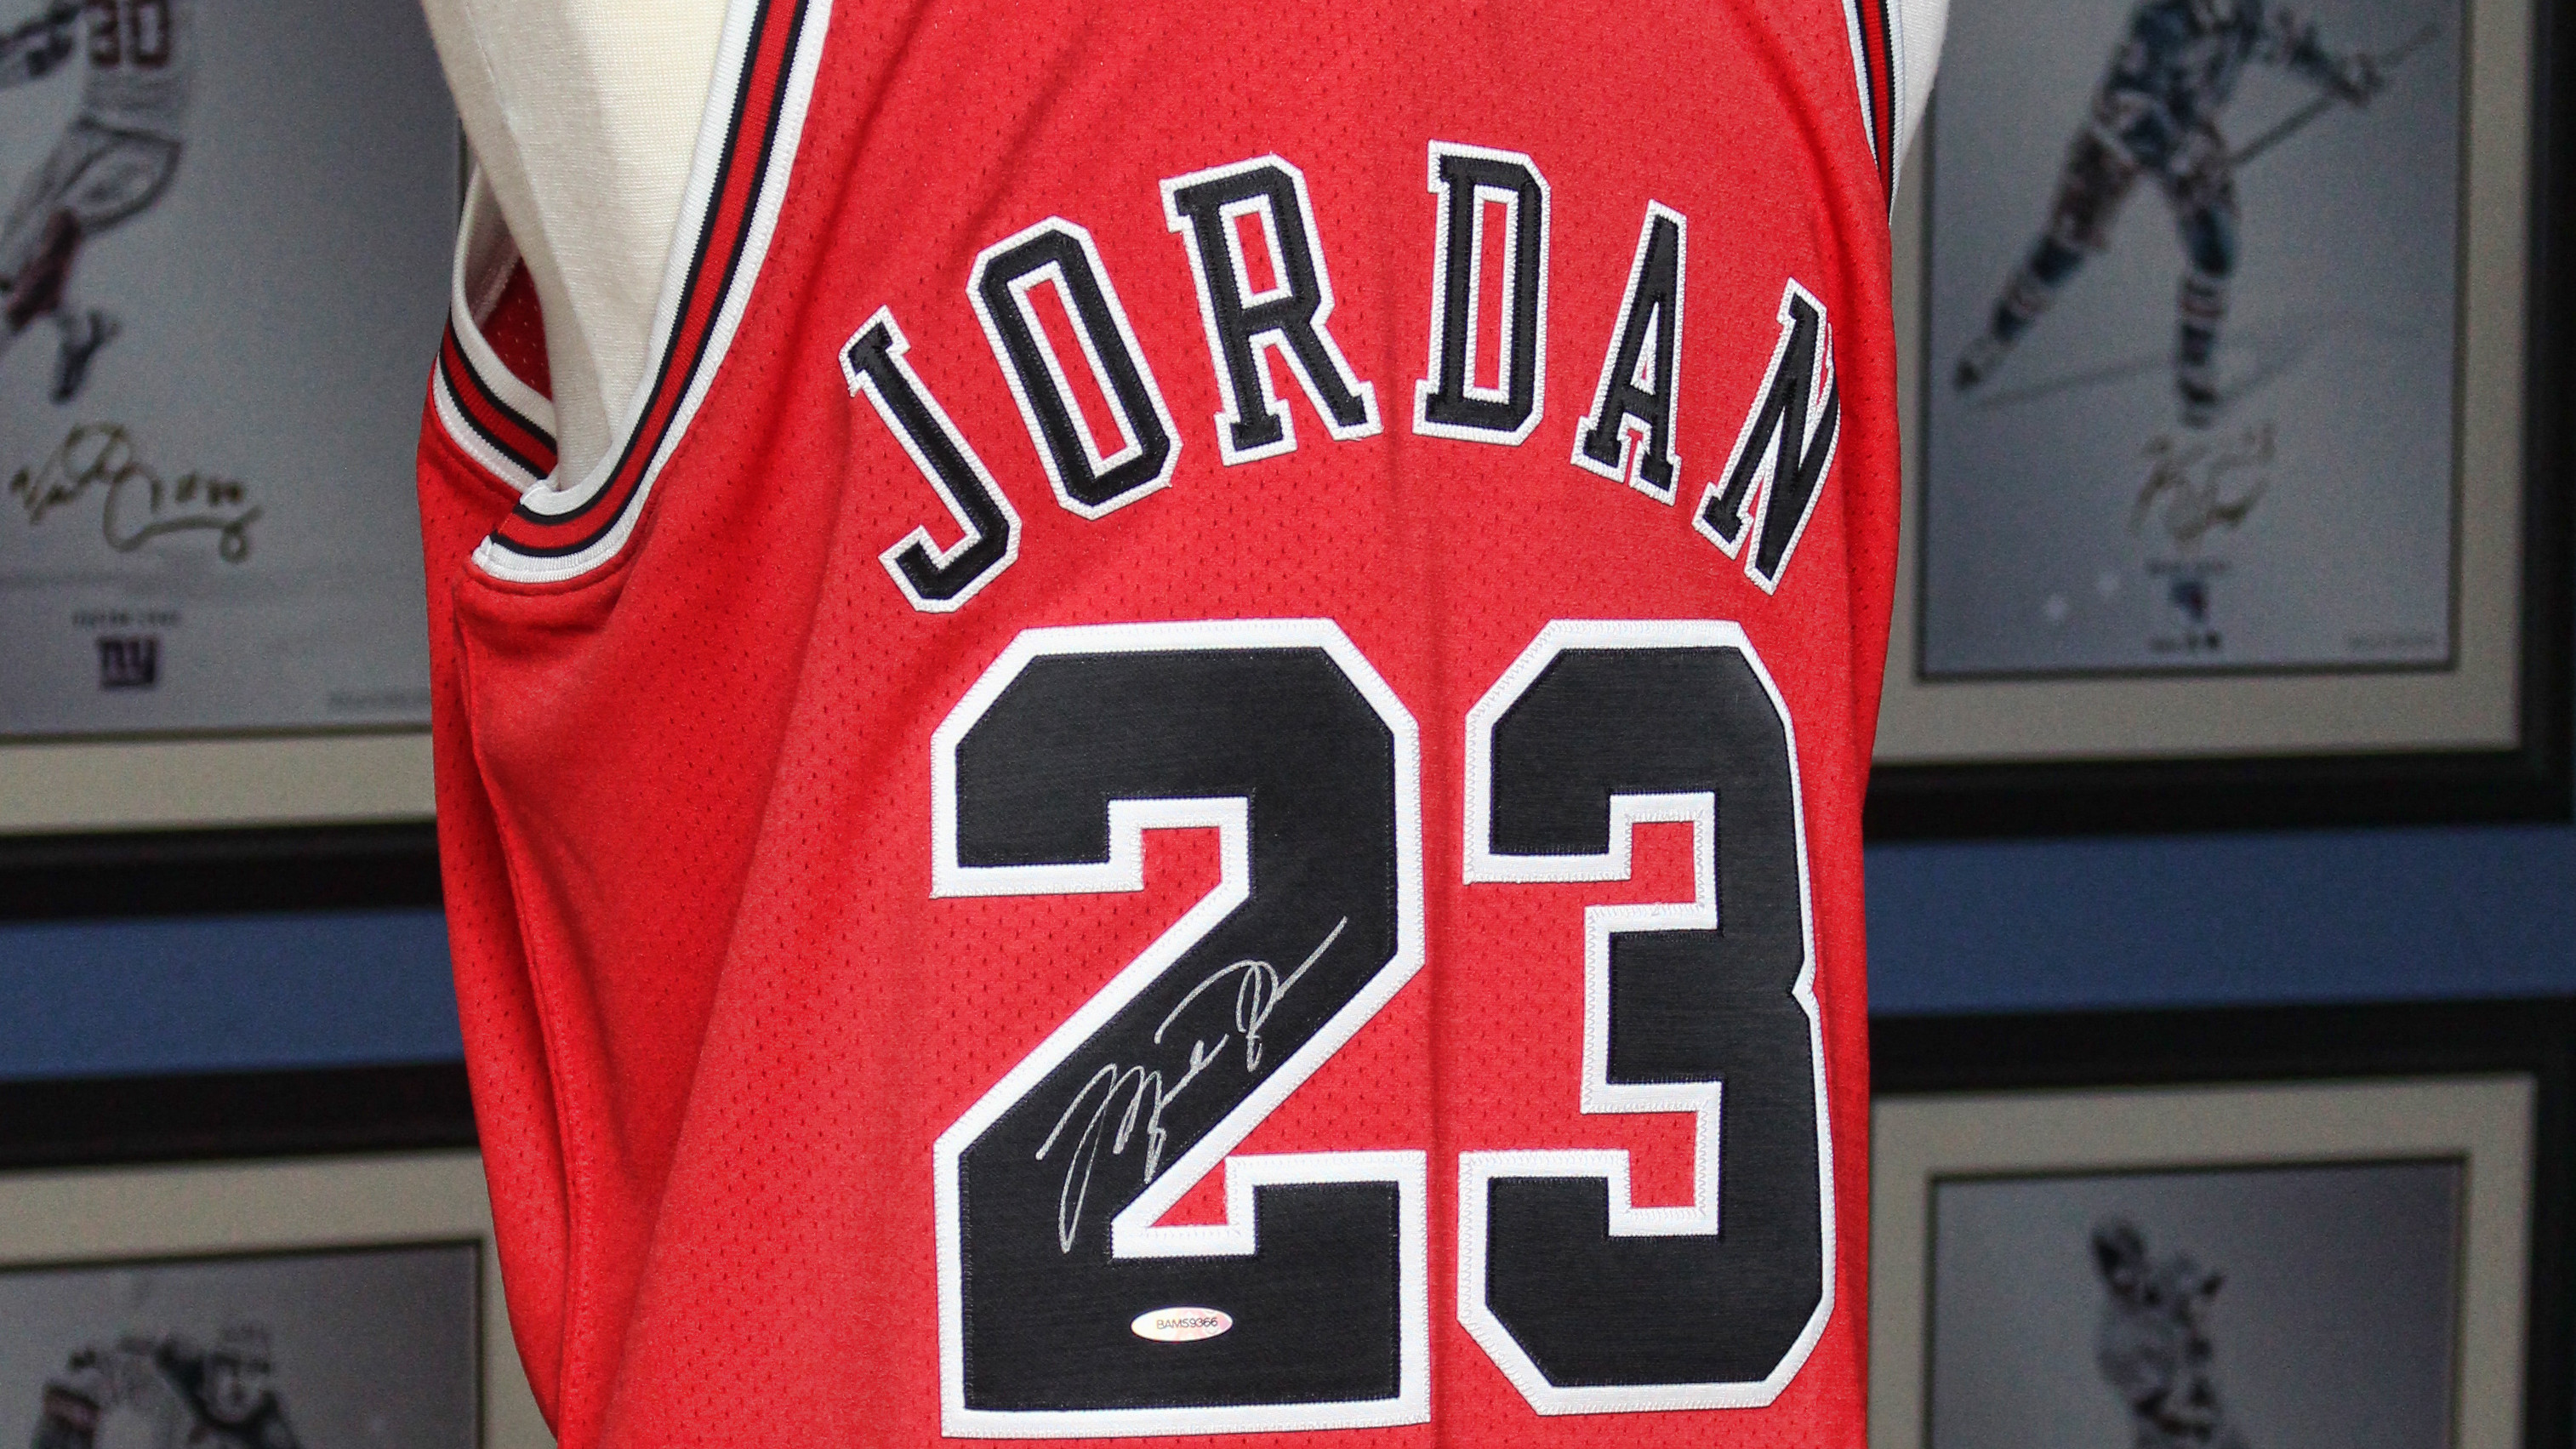 e6c13d17c How to Win This Signed Michael Jordan Jersey | Sole Collector